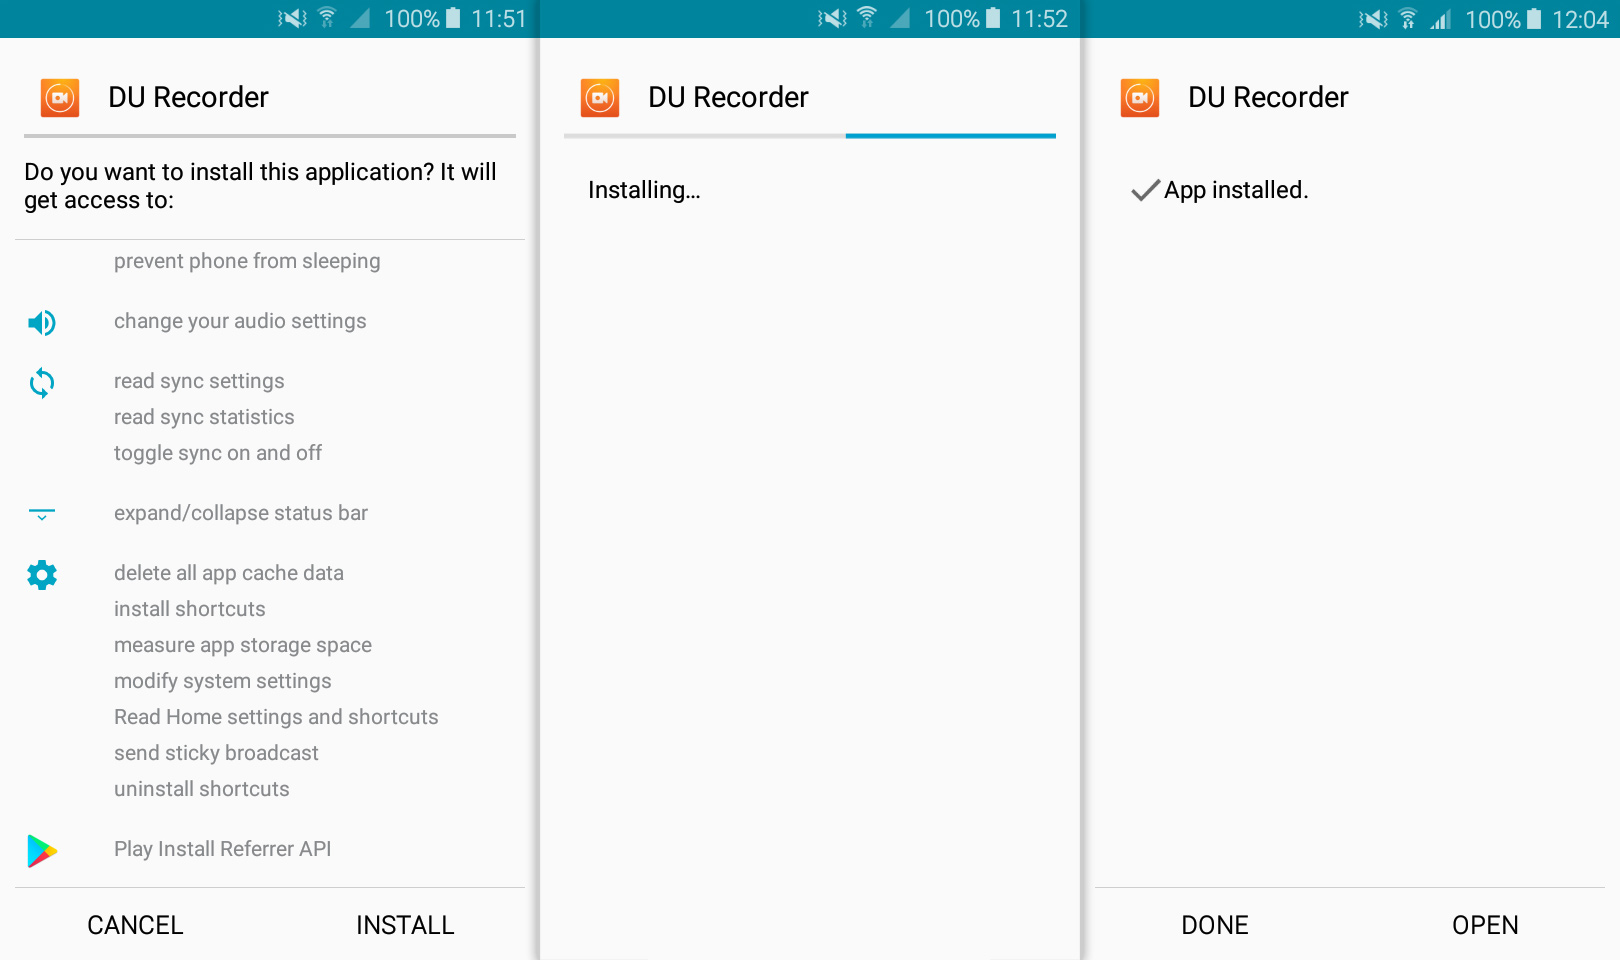 du recorder for android